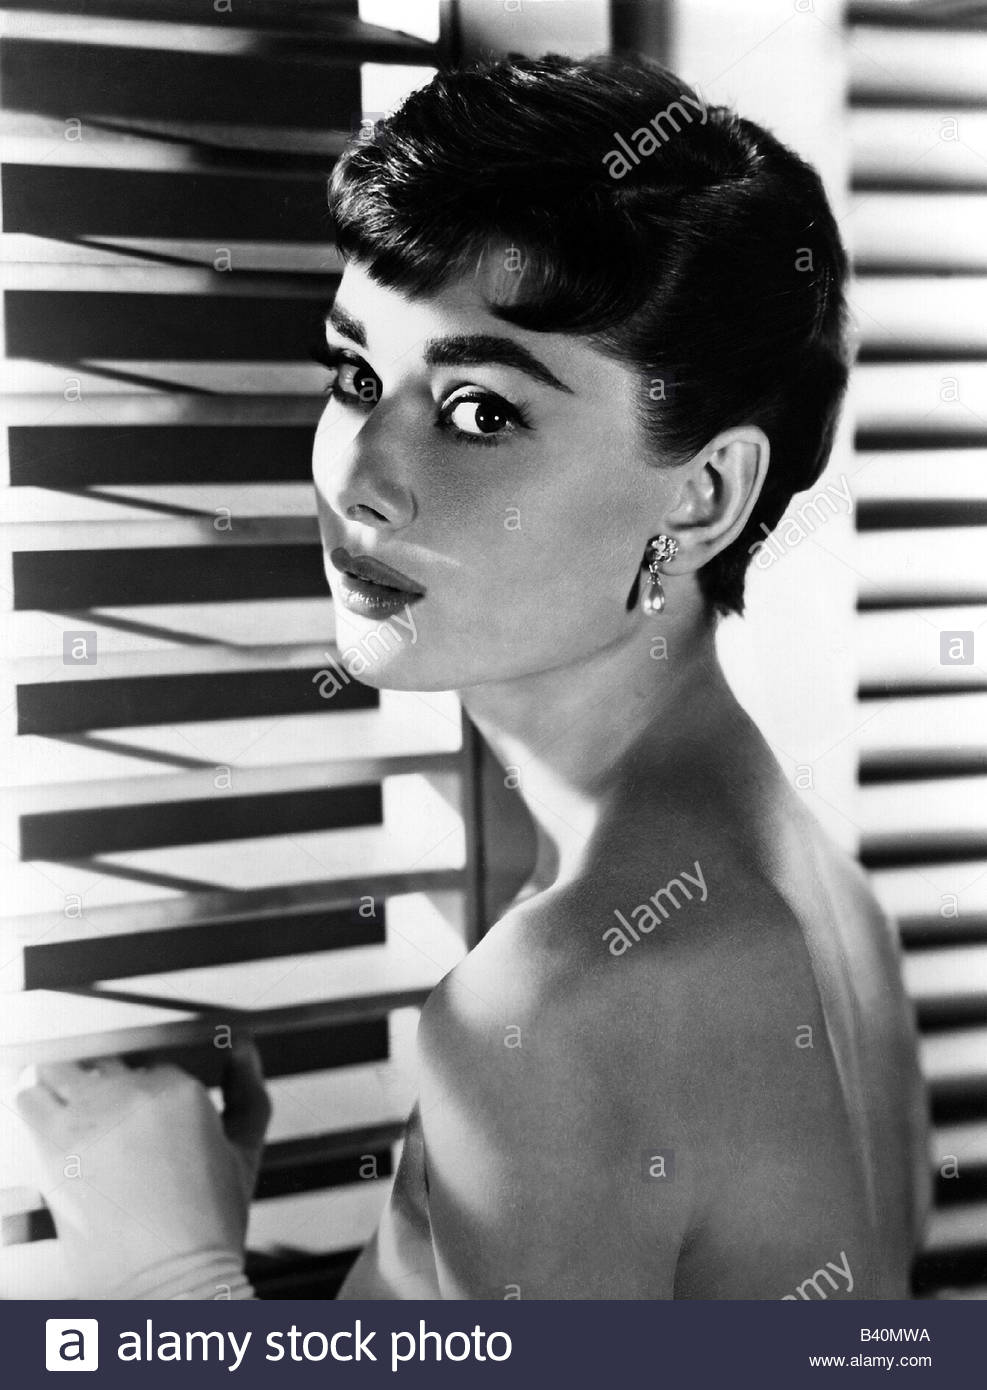 Hepburn, Audrey, 4.5.1929 - 20.1.1993, British actress, portrait, 1950s, Additional-Rights-Clearances-NA - Stock Image